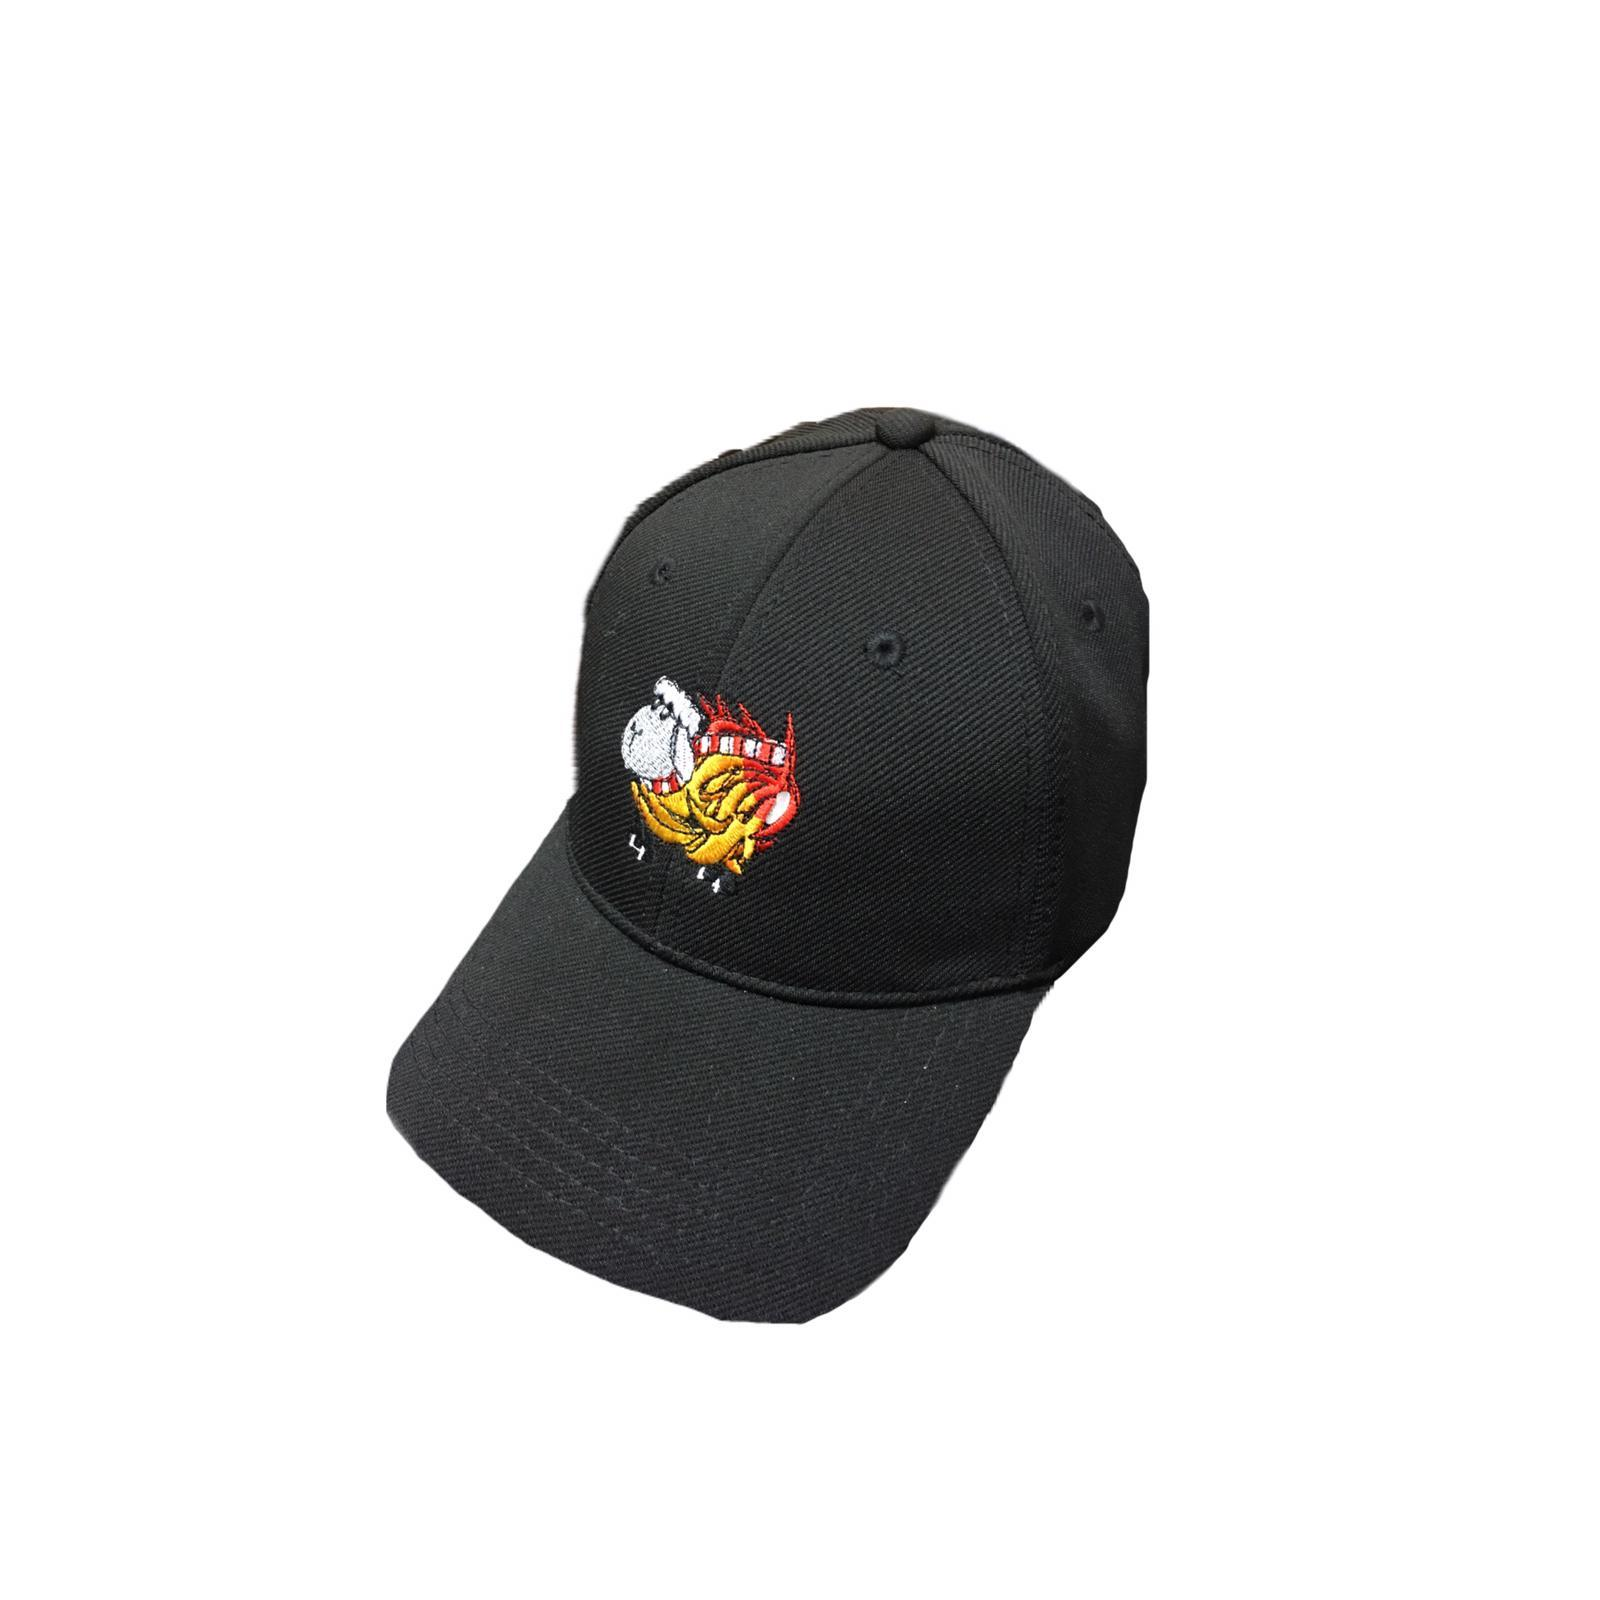 Black sheep on fire cap